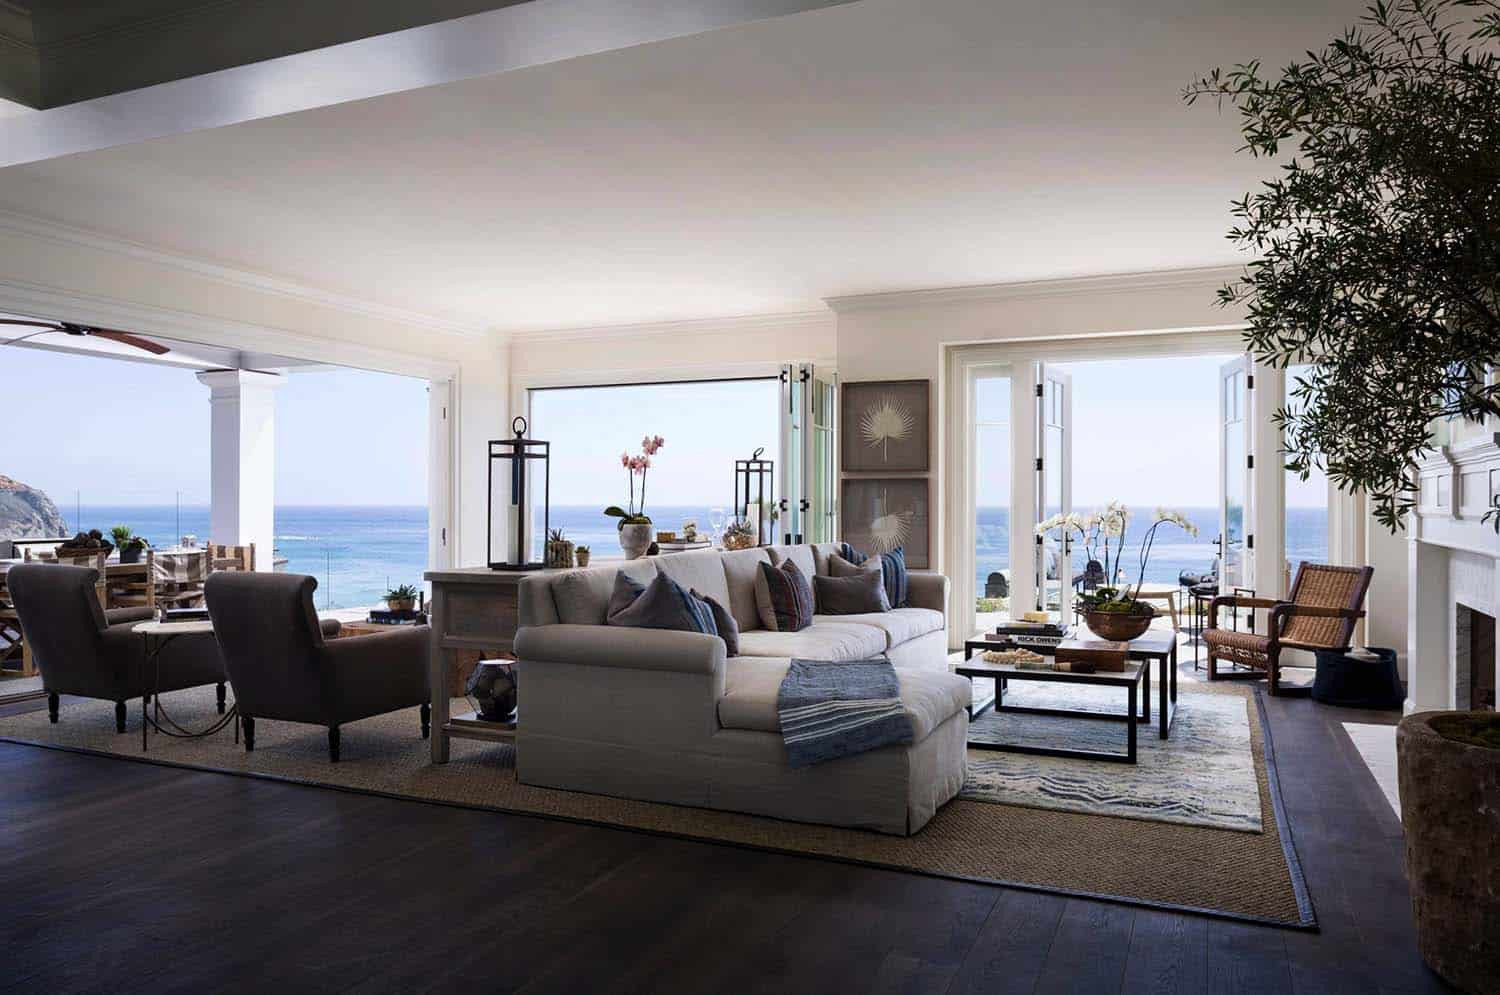 East coast meets west coast in this california beach house for California beach house interior design